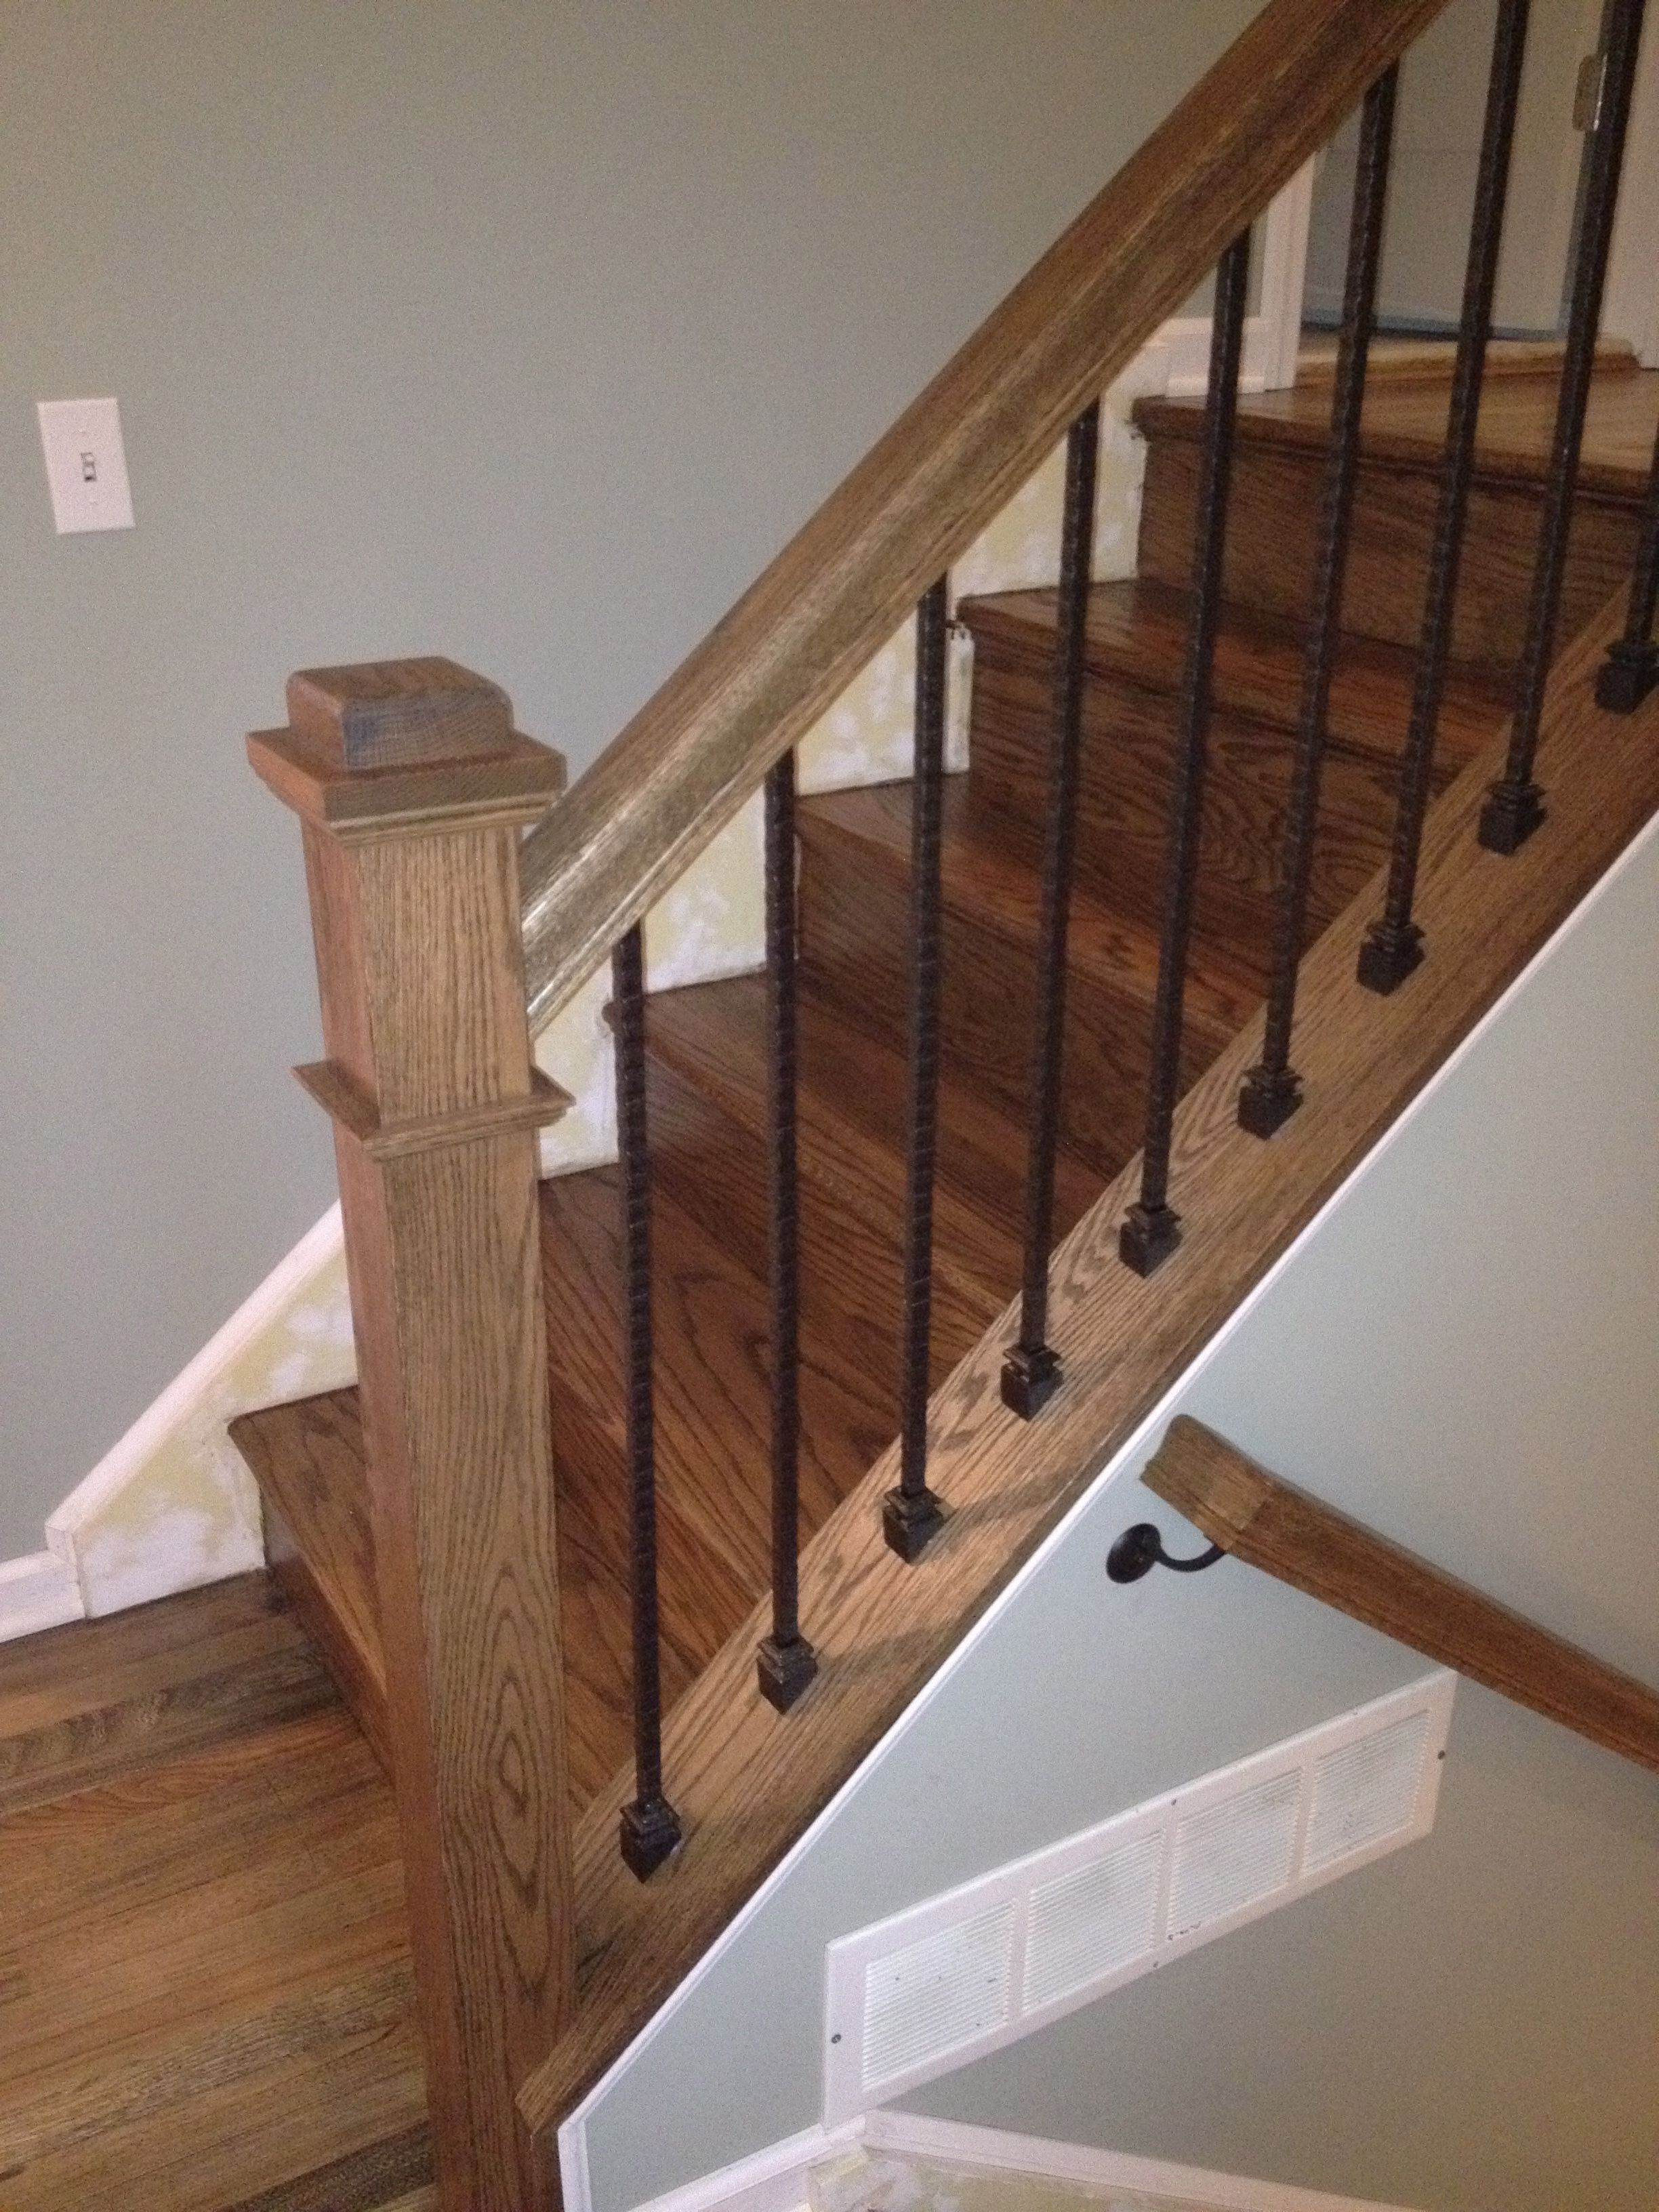 Pin By Gorsegner Brothers Hardwood Fl On Home In 2020 Wood | Replacing Wood Spindles With Metal | Stair Spindles | Iron Stair Balusters | Stair Parts | Stair Railing | Staircase